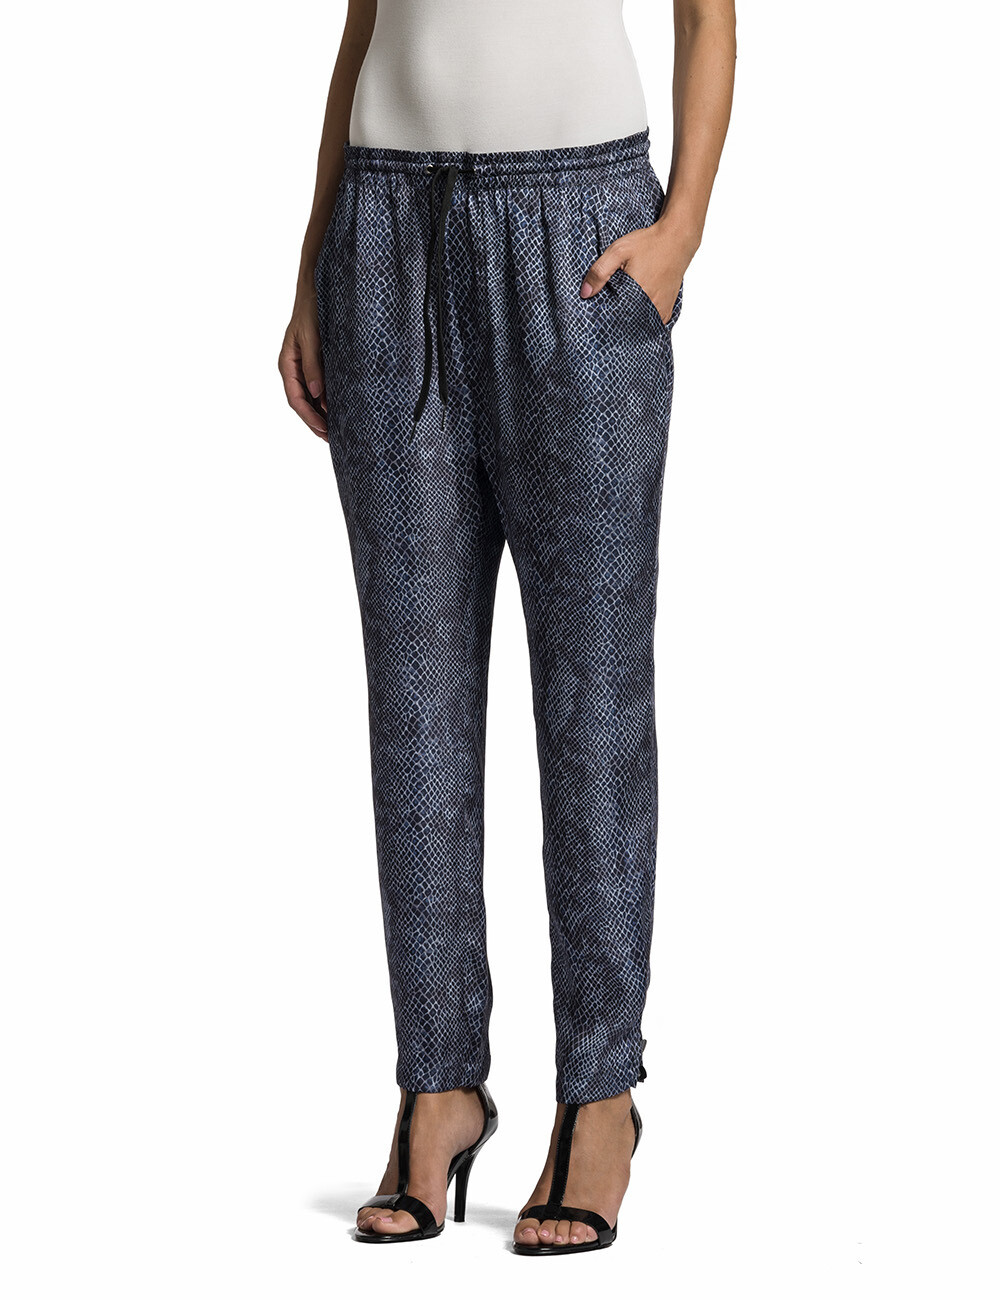 Pantalone coulisse in tessuto fluido